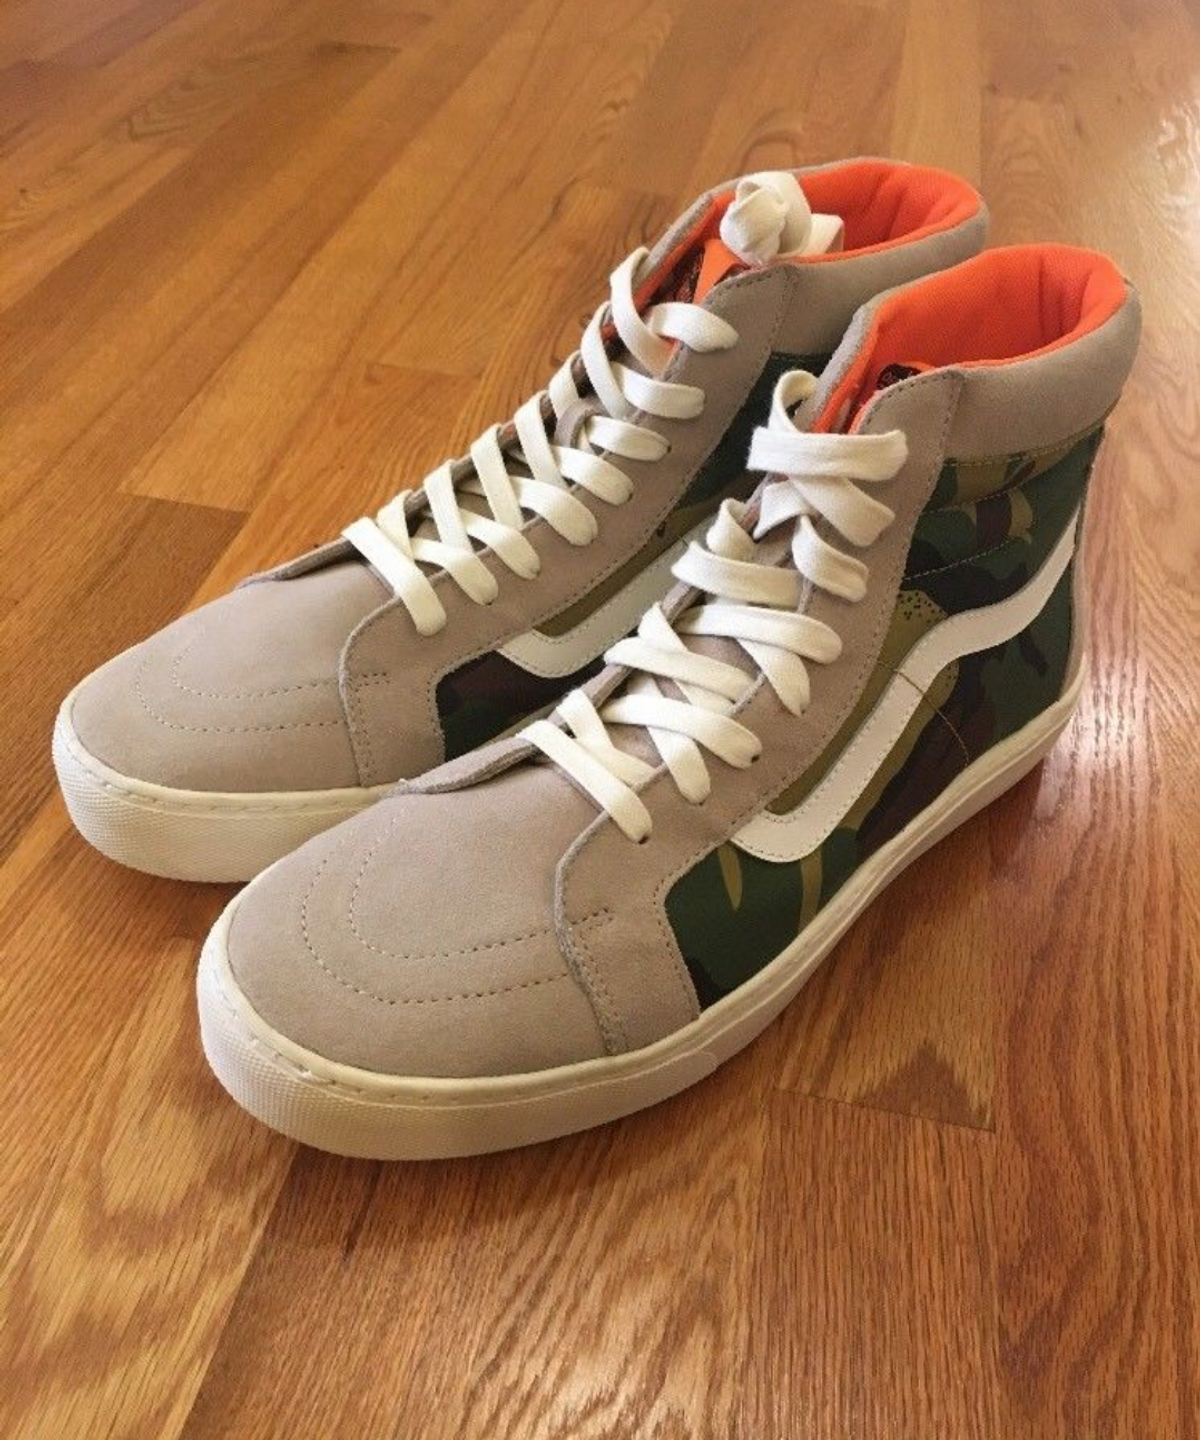 vans 1 1 vans vault rare sample pair london undercover sk8 hi mte camo us mens 11 grailed vans 1 1 vans vault rare sample pair london undercover sk8 hi mte camo us mens 11 size 11 315